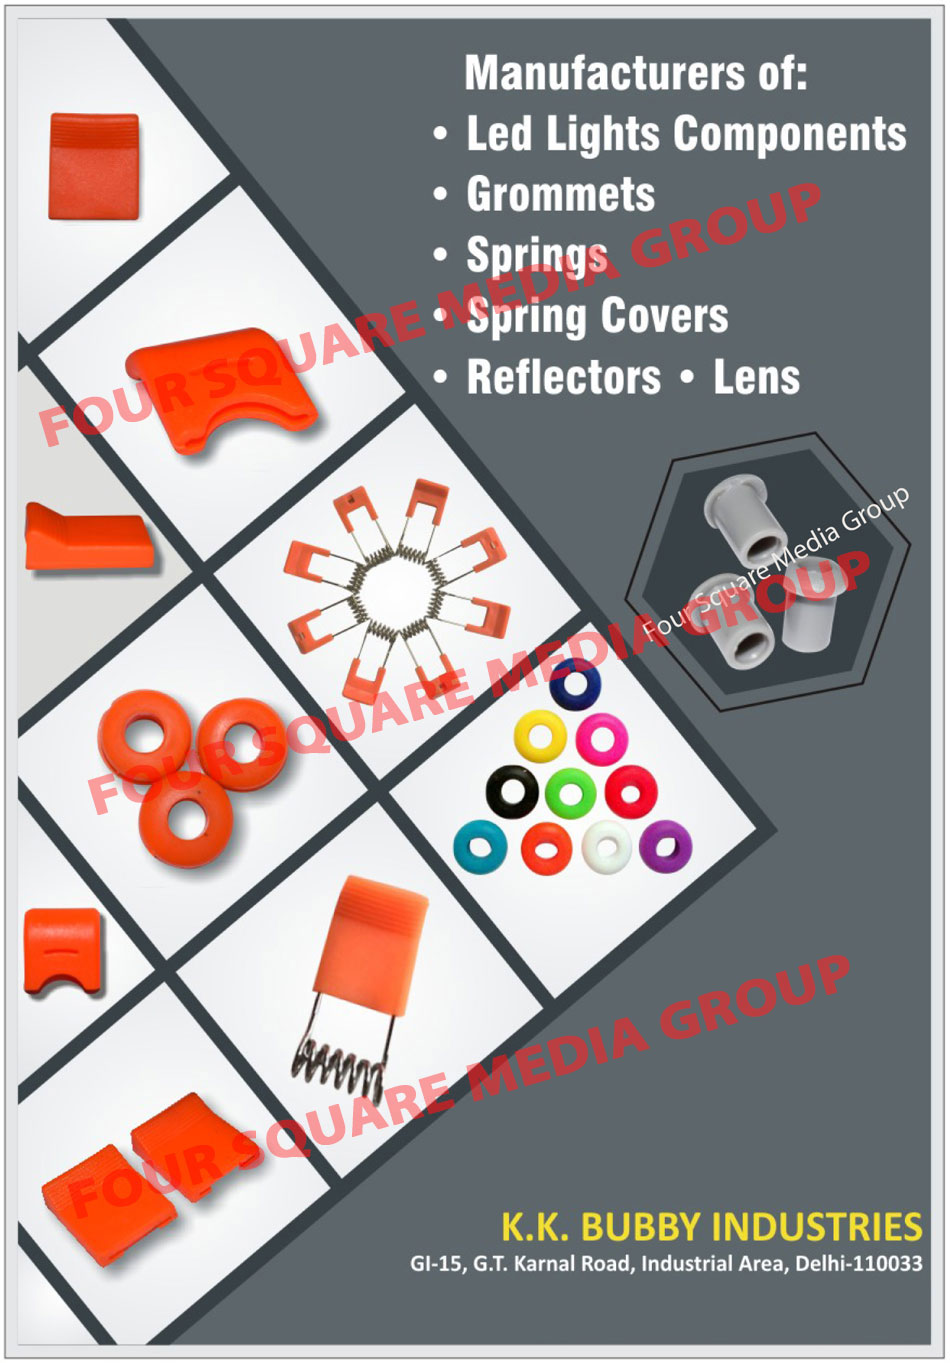 Led Light Components, Grommets, Springs, Spring Covers, Reflectors, Lenses